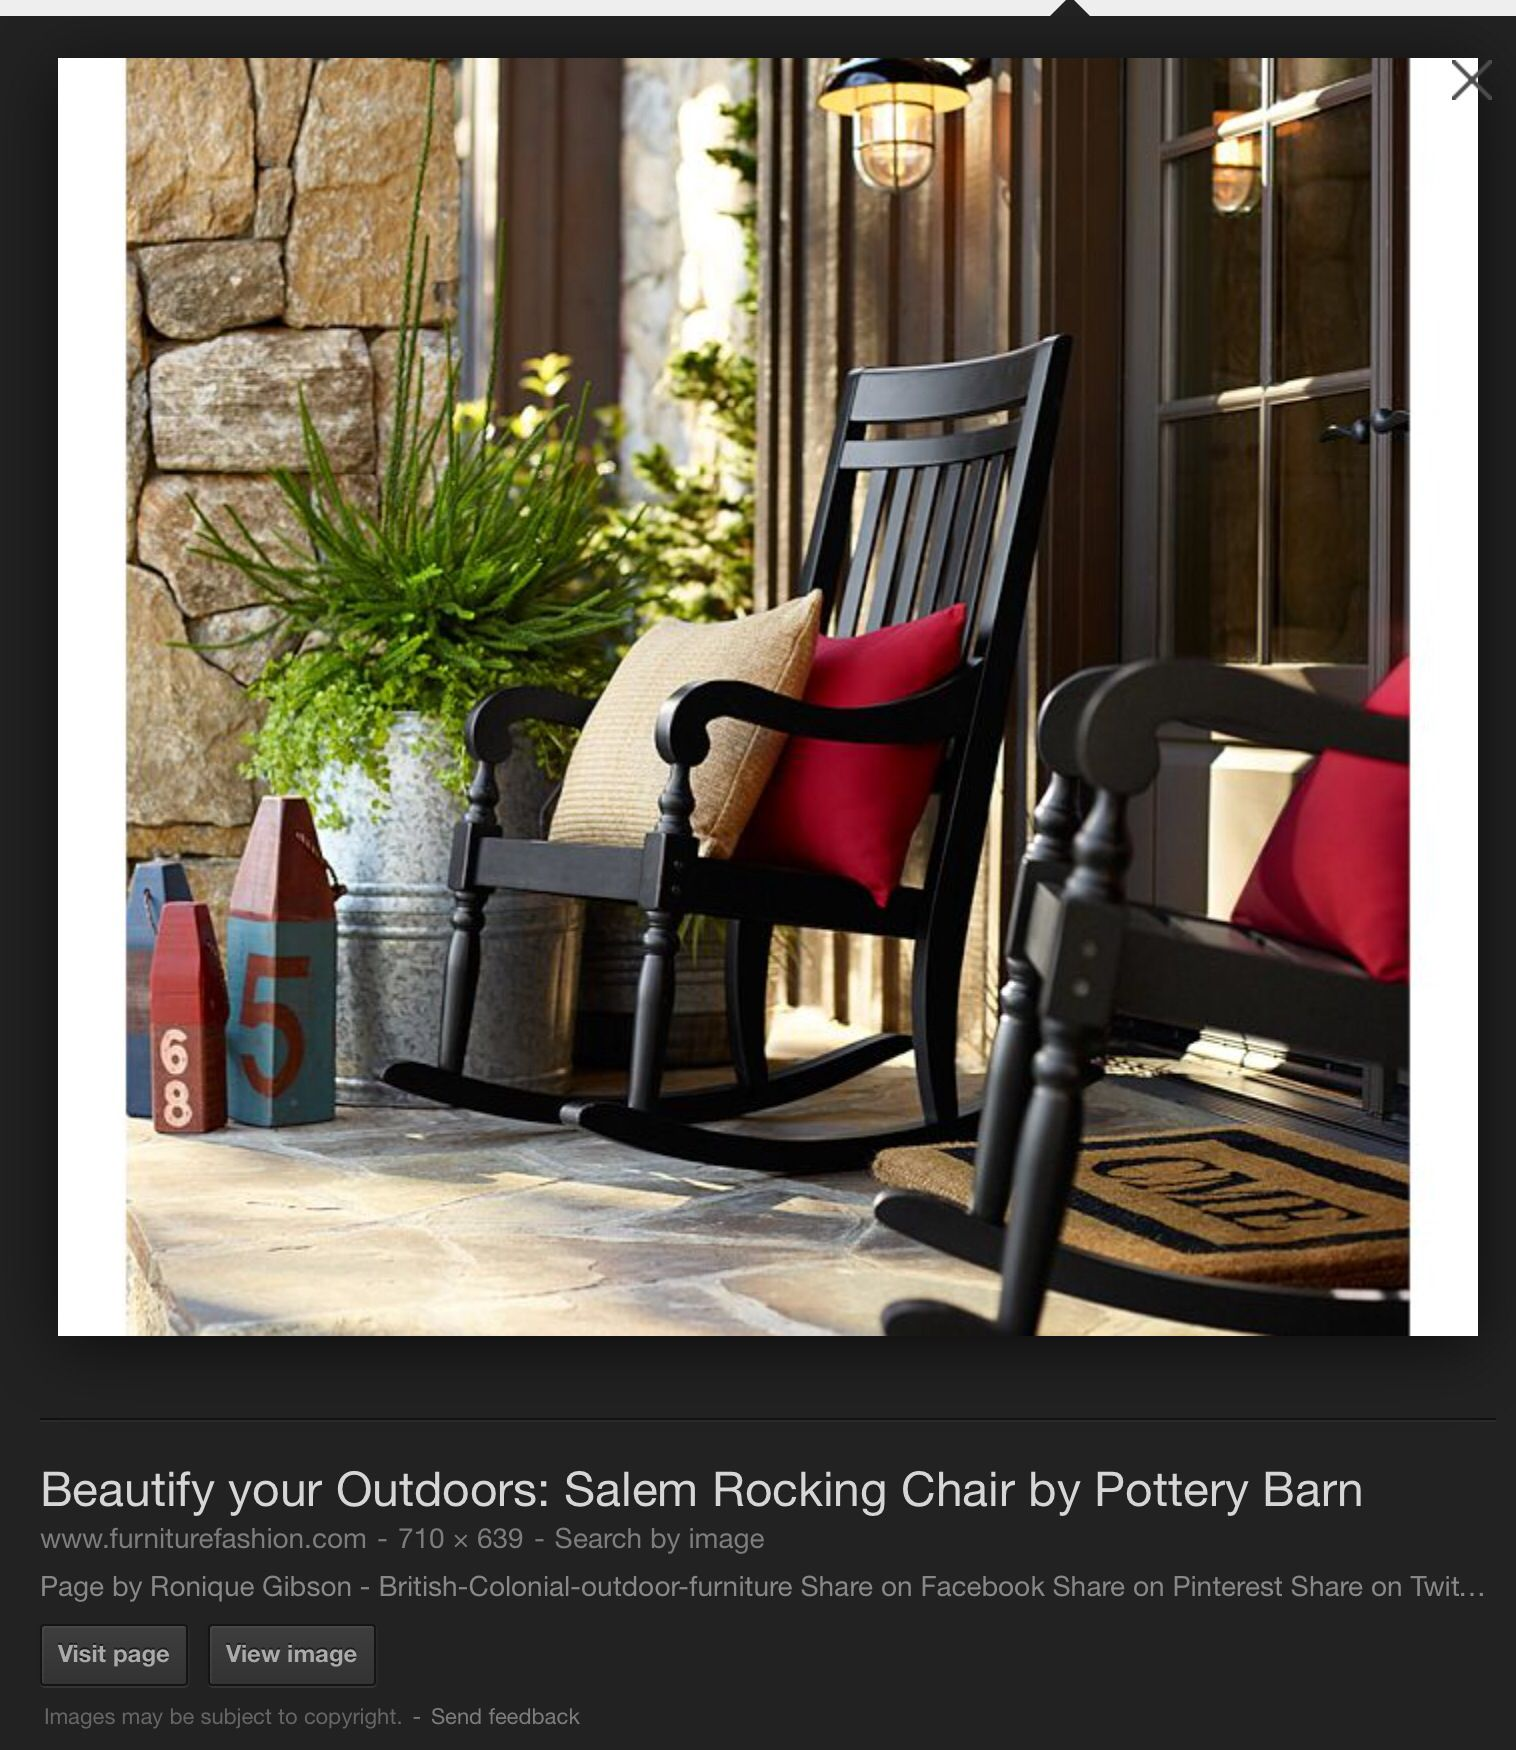 Pin By Cassandra Johnston On Decorating Outdoor Space Rocking Chair Porch Porch Furniture House With Porch